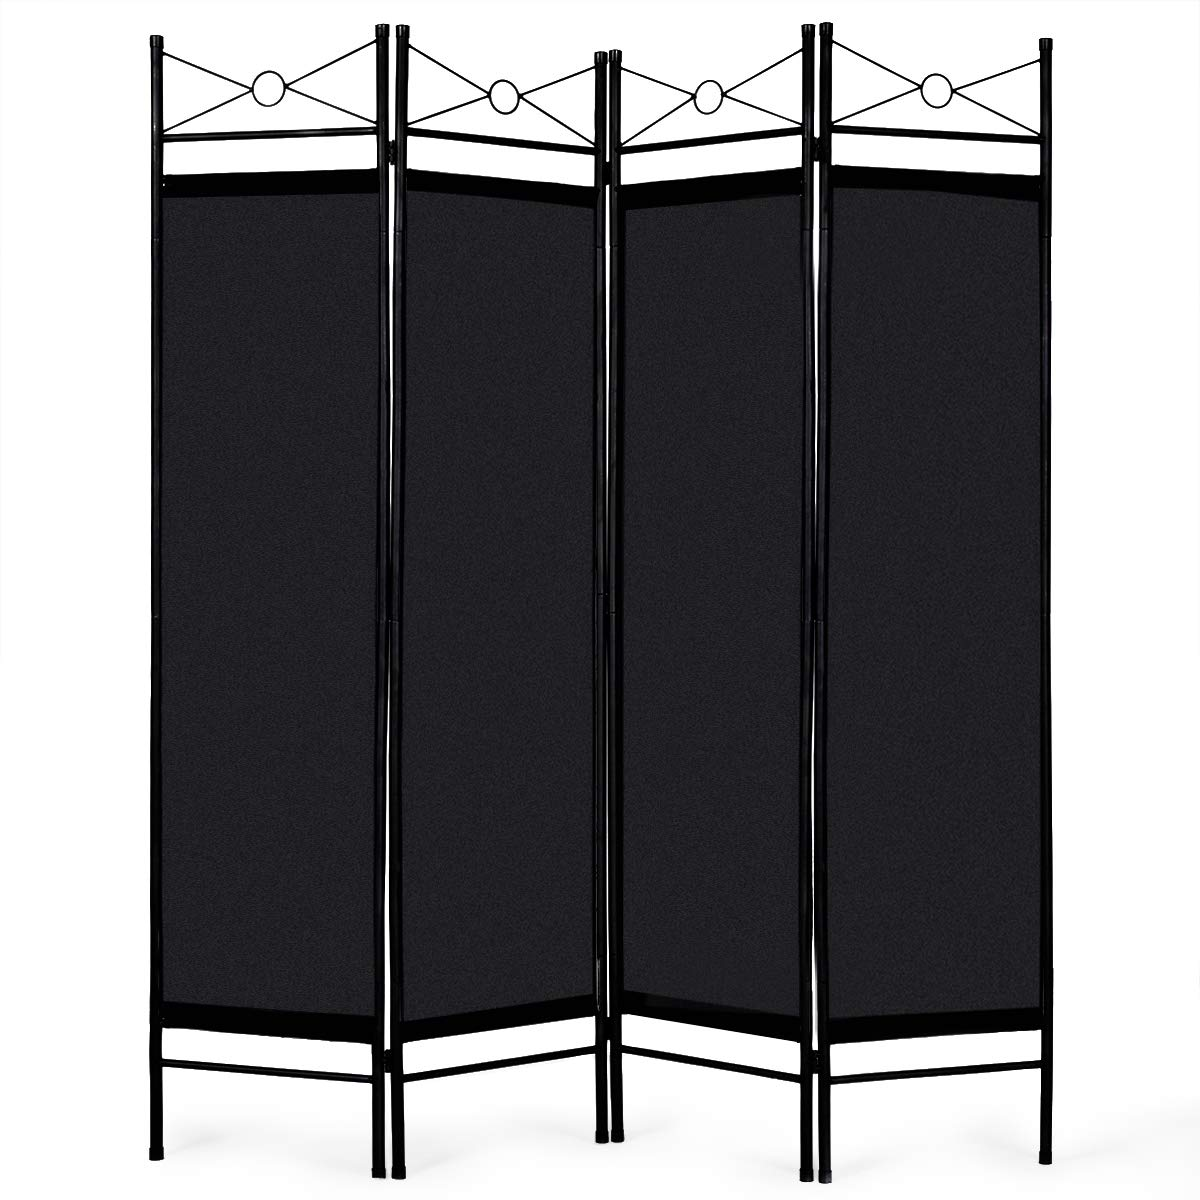 Giantex 4 Panel Room Divider Screens Steel Frame & Fabric Surface Freestanding Room Dividers and Folding Privacy Screens Home Office, Black by Giantex